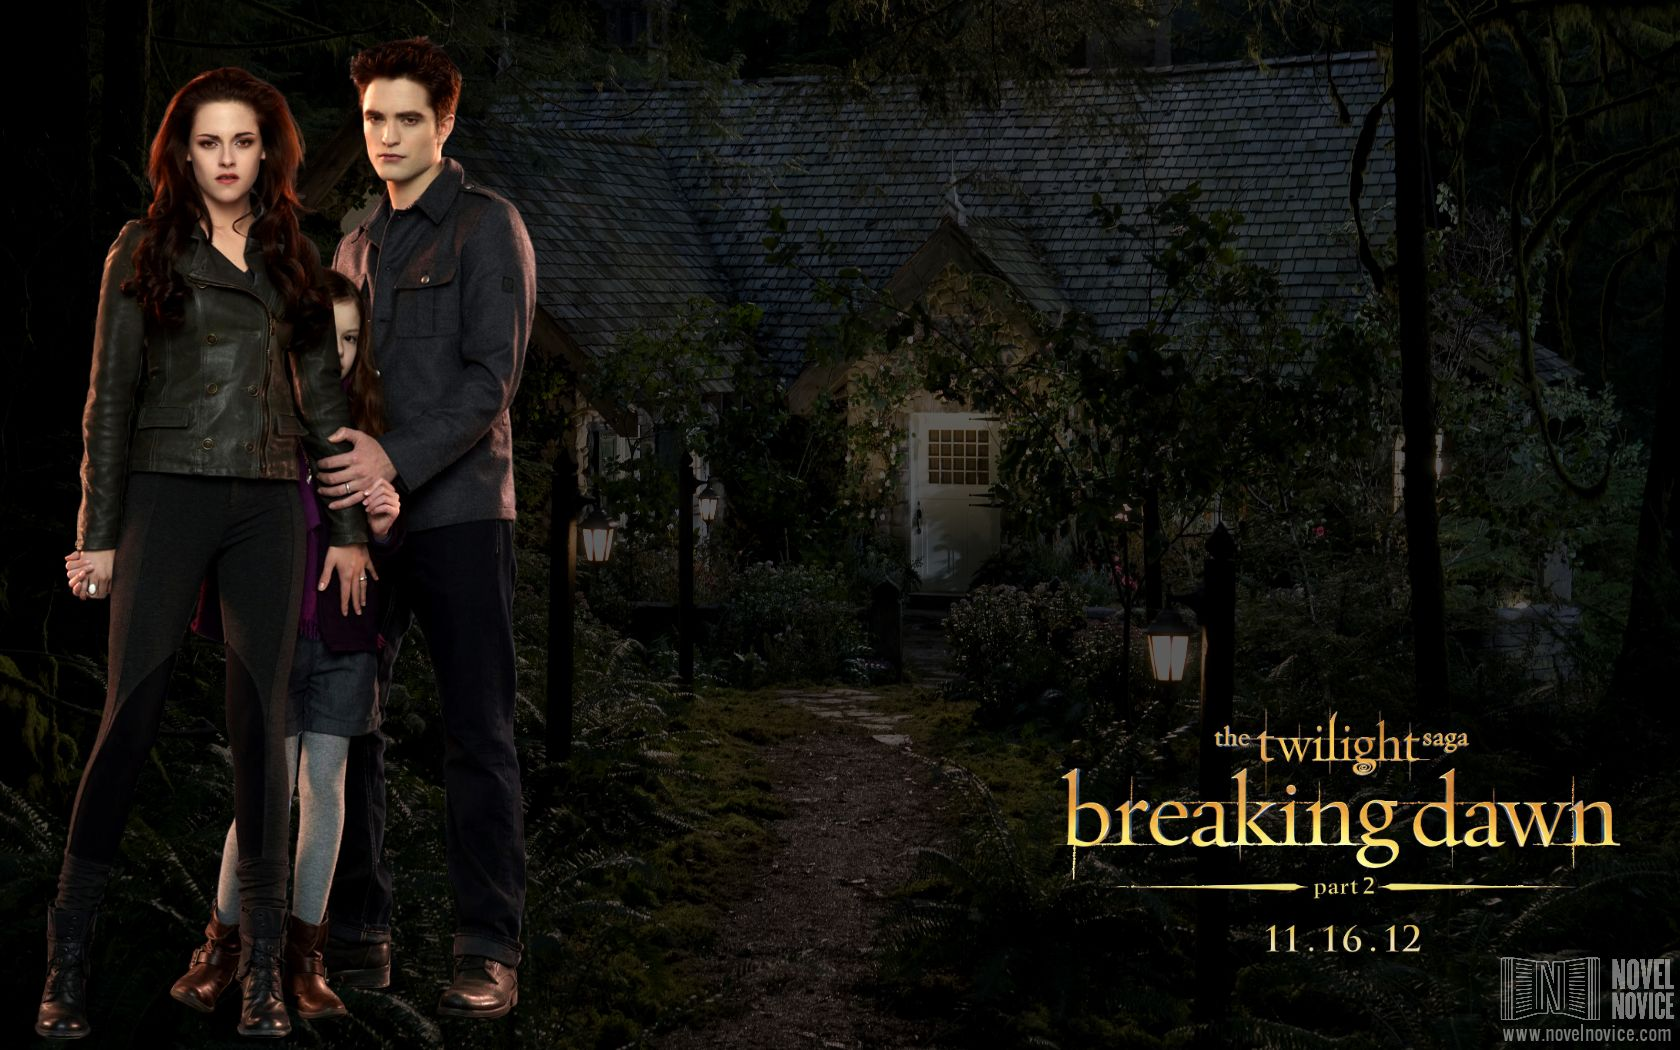 The Twilight Saga: Breaking Dawn - Part 2 Desktop Wallpapers - Novel ...